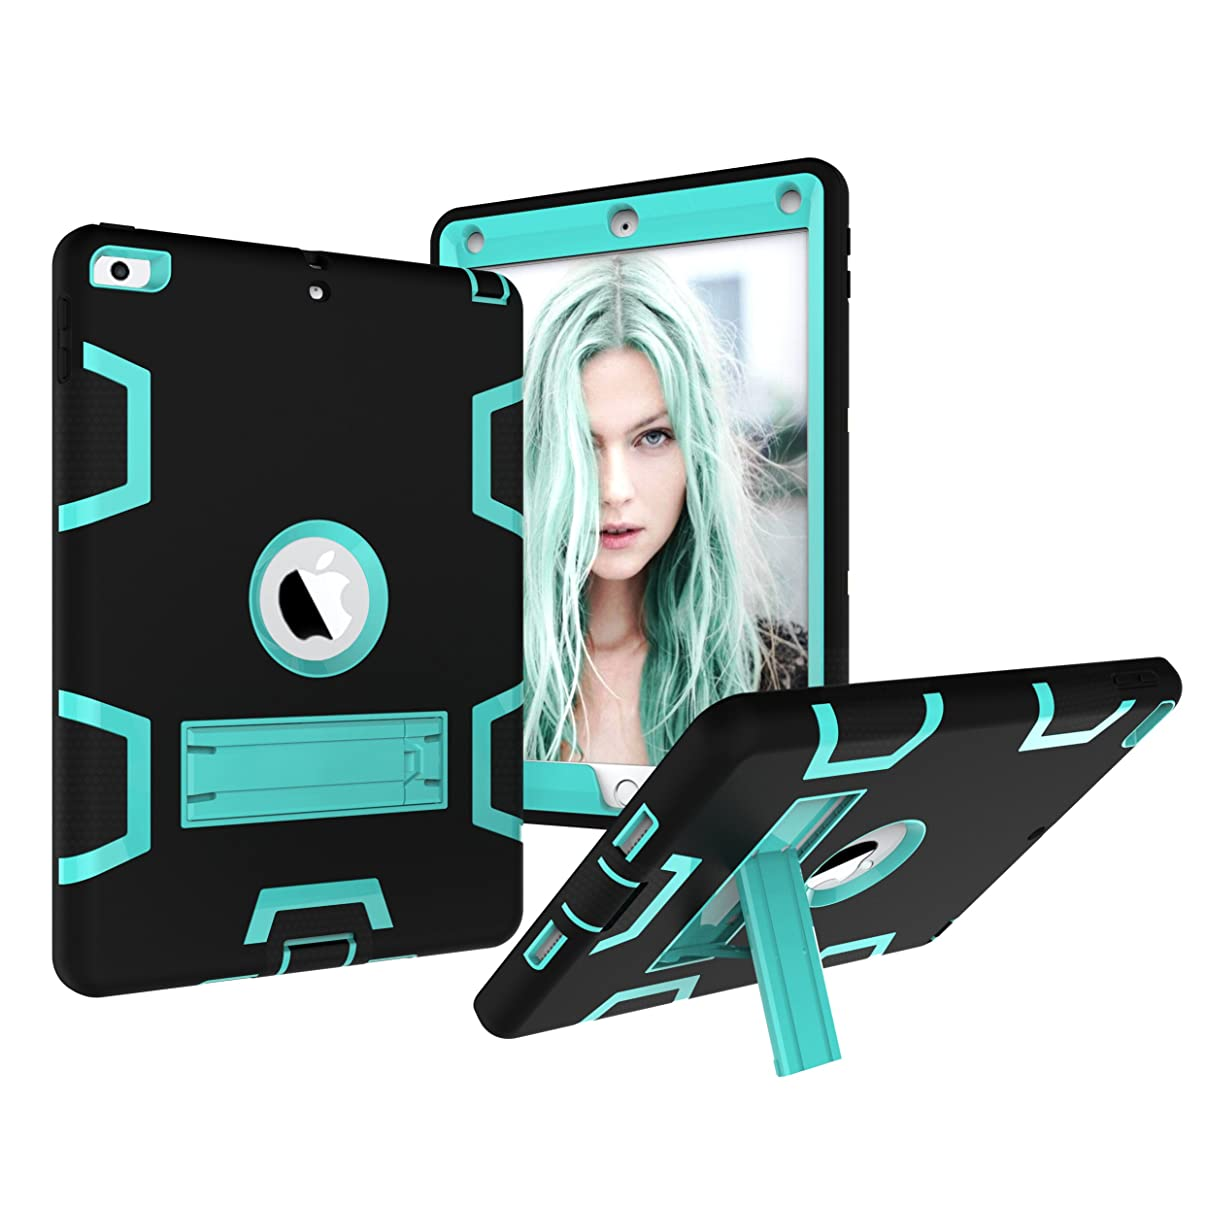 iPad 9.7 Case 2018/2017, Dooge Three Layers PC&Silicon Armor Defender Heavy Duty Shock-Absorption Rugged Hybrid Full Body Protective Case with Kickstand for Apple iPad 9.7 inch 2017/2018 Release